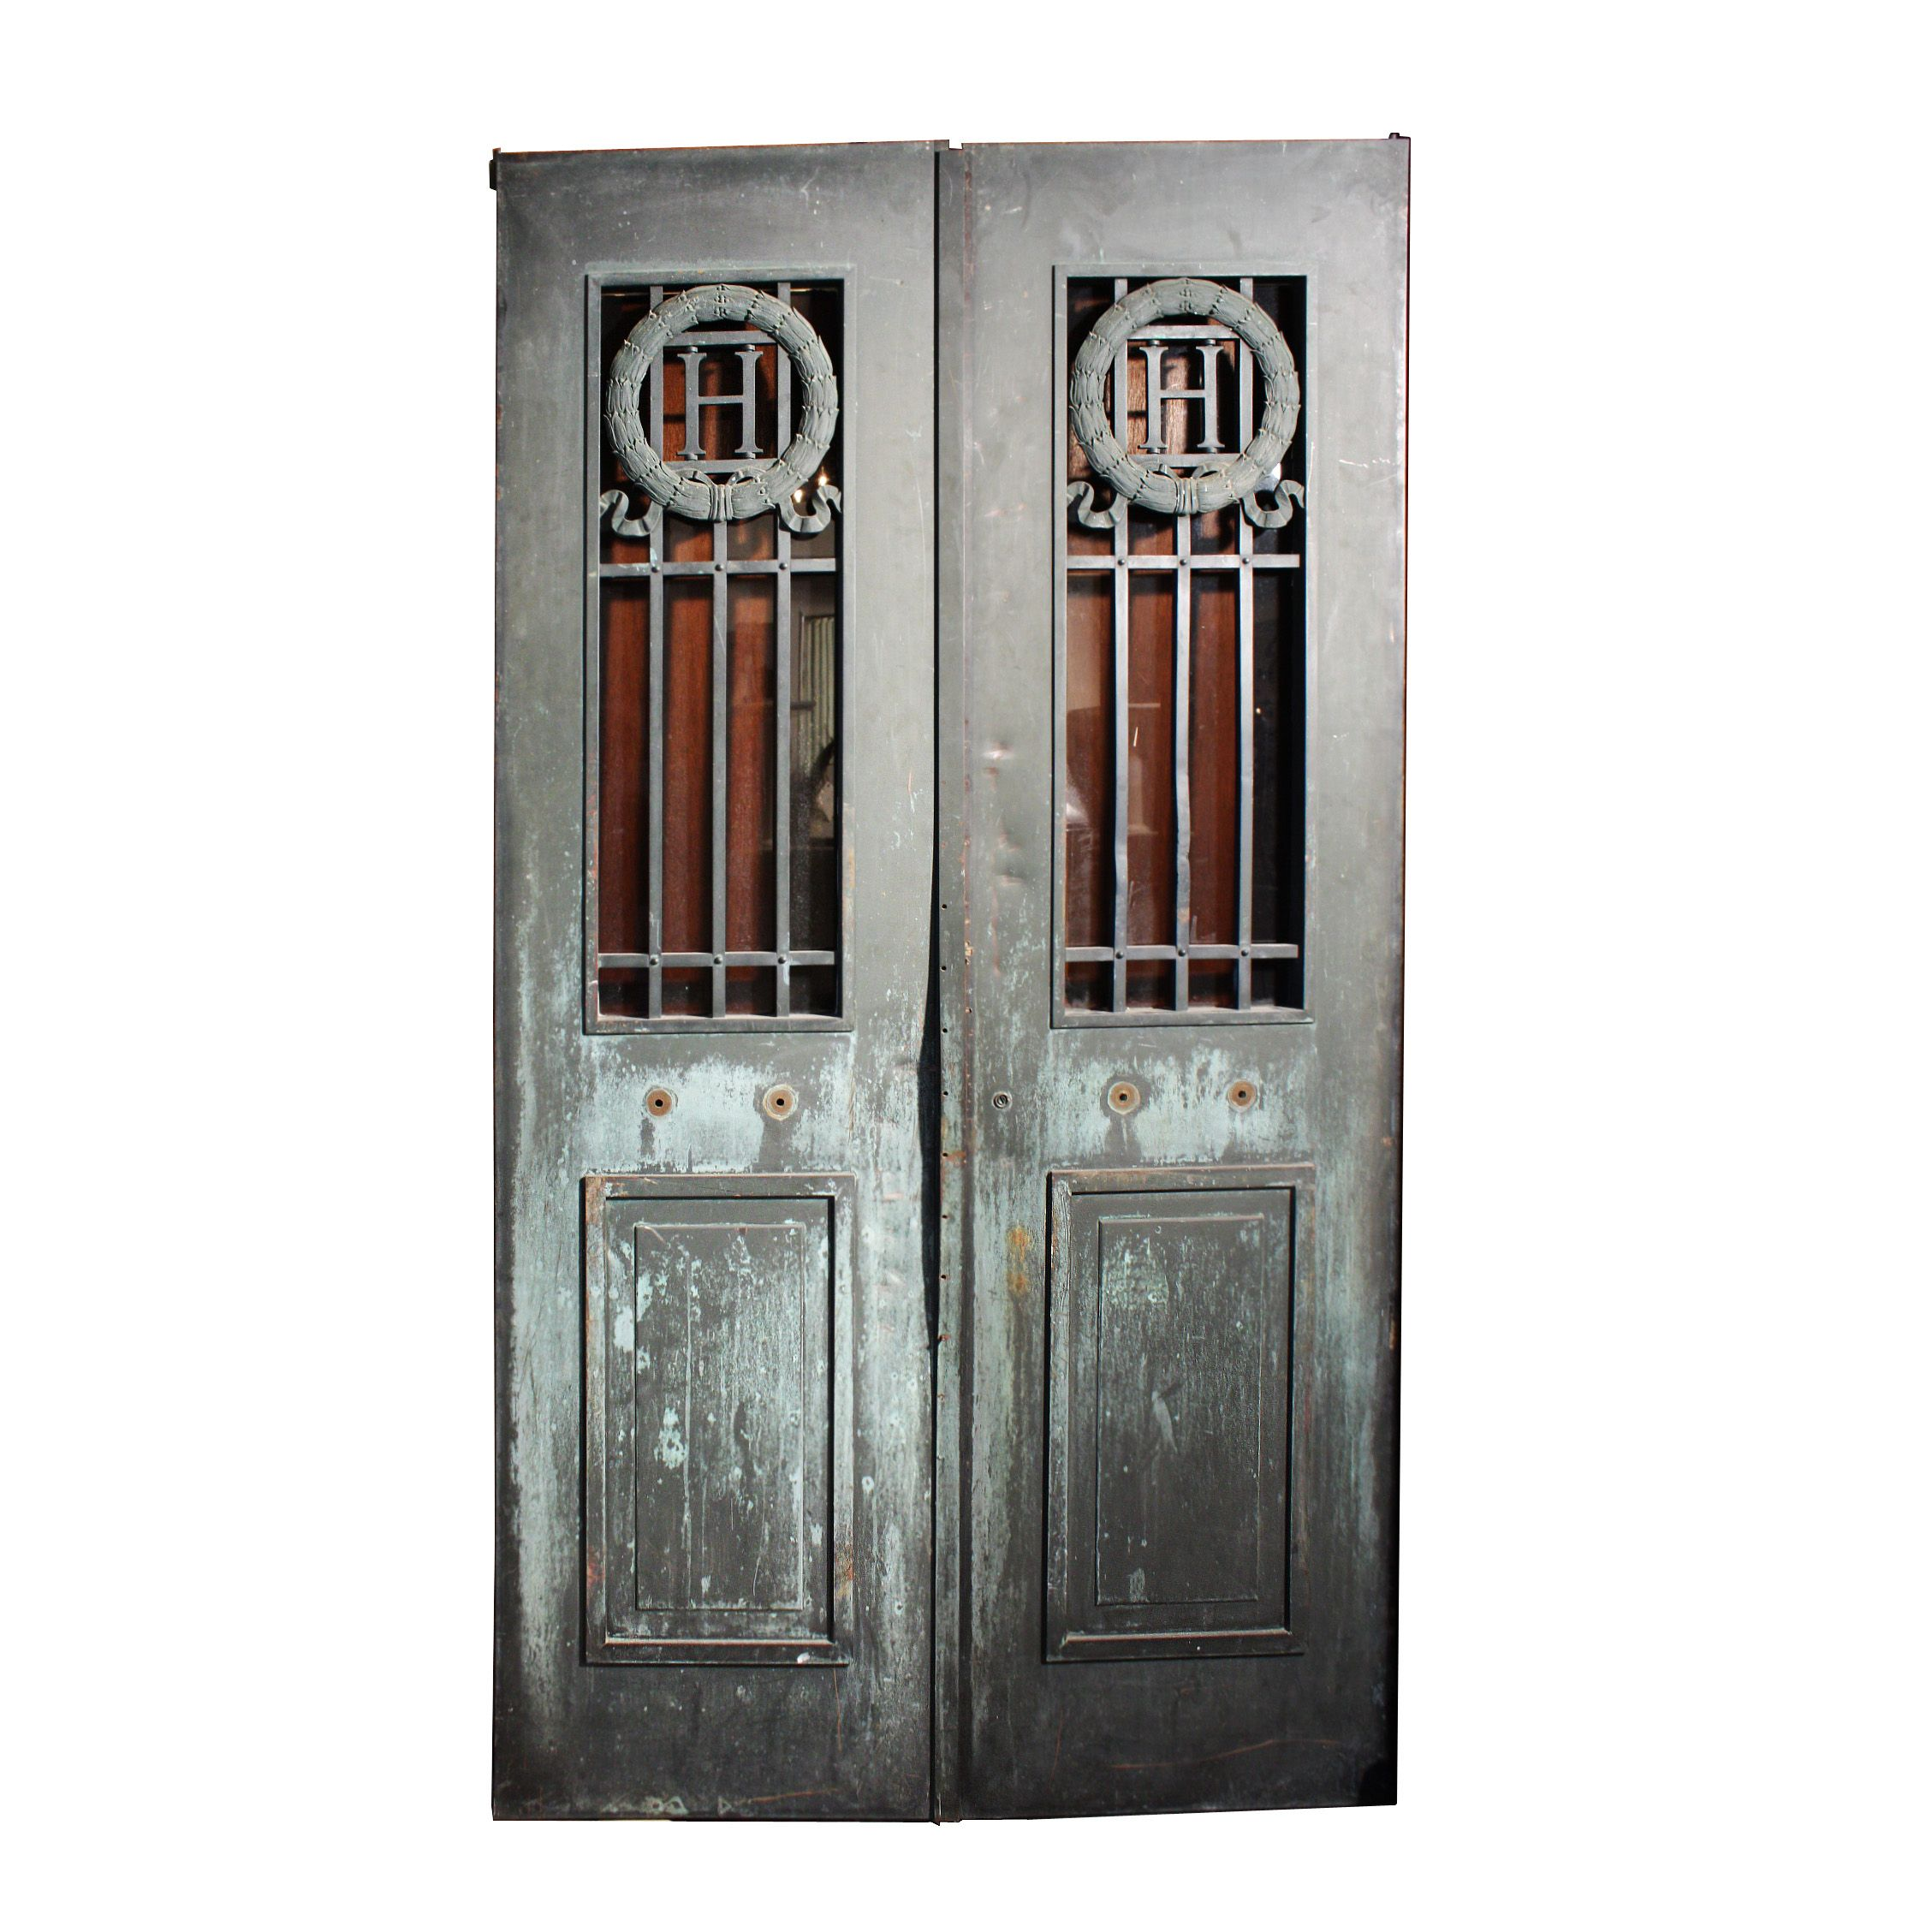 A handsome pair of antique bronze double doors salvaged from Detroit dating from the late  sc 1 st  Pinterest & A handsome pair of antique bronze double doors salvaged from Detroit ...